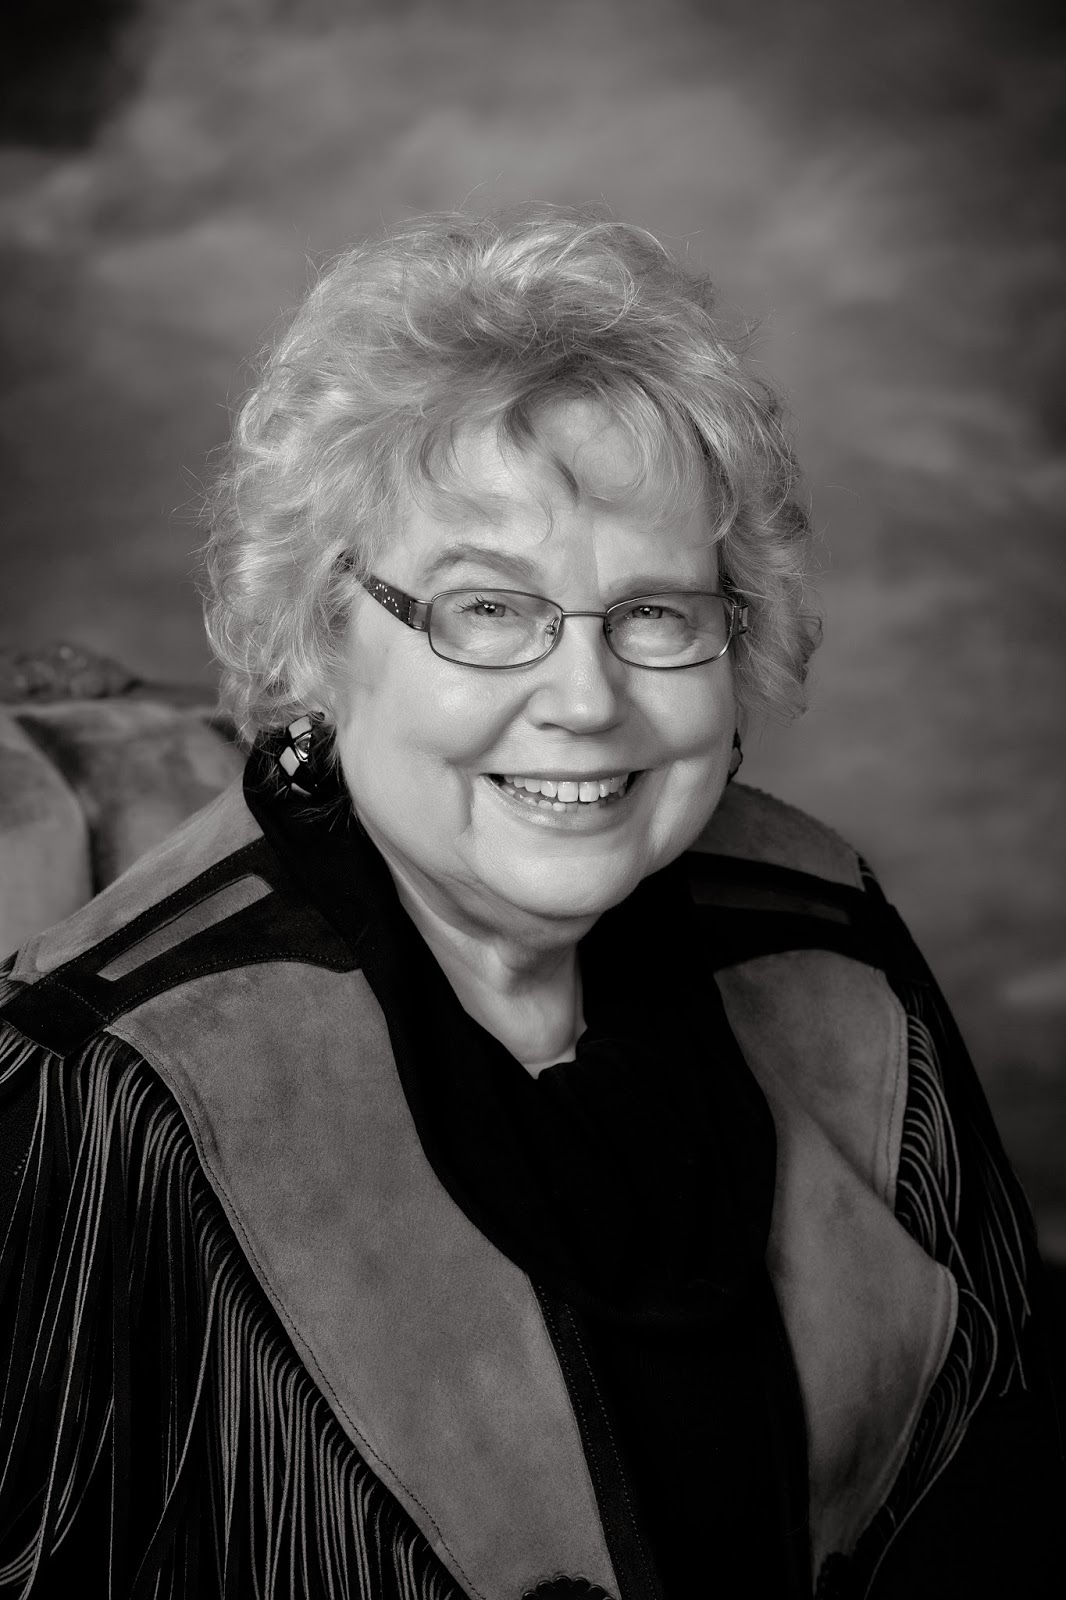 Author Janet Chester Bly